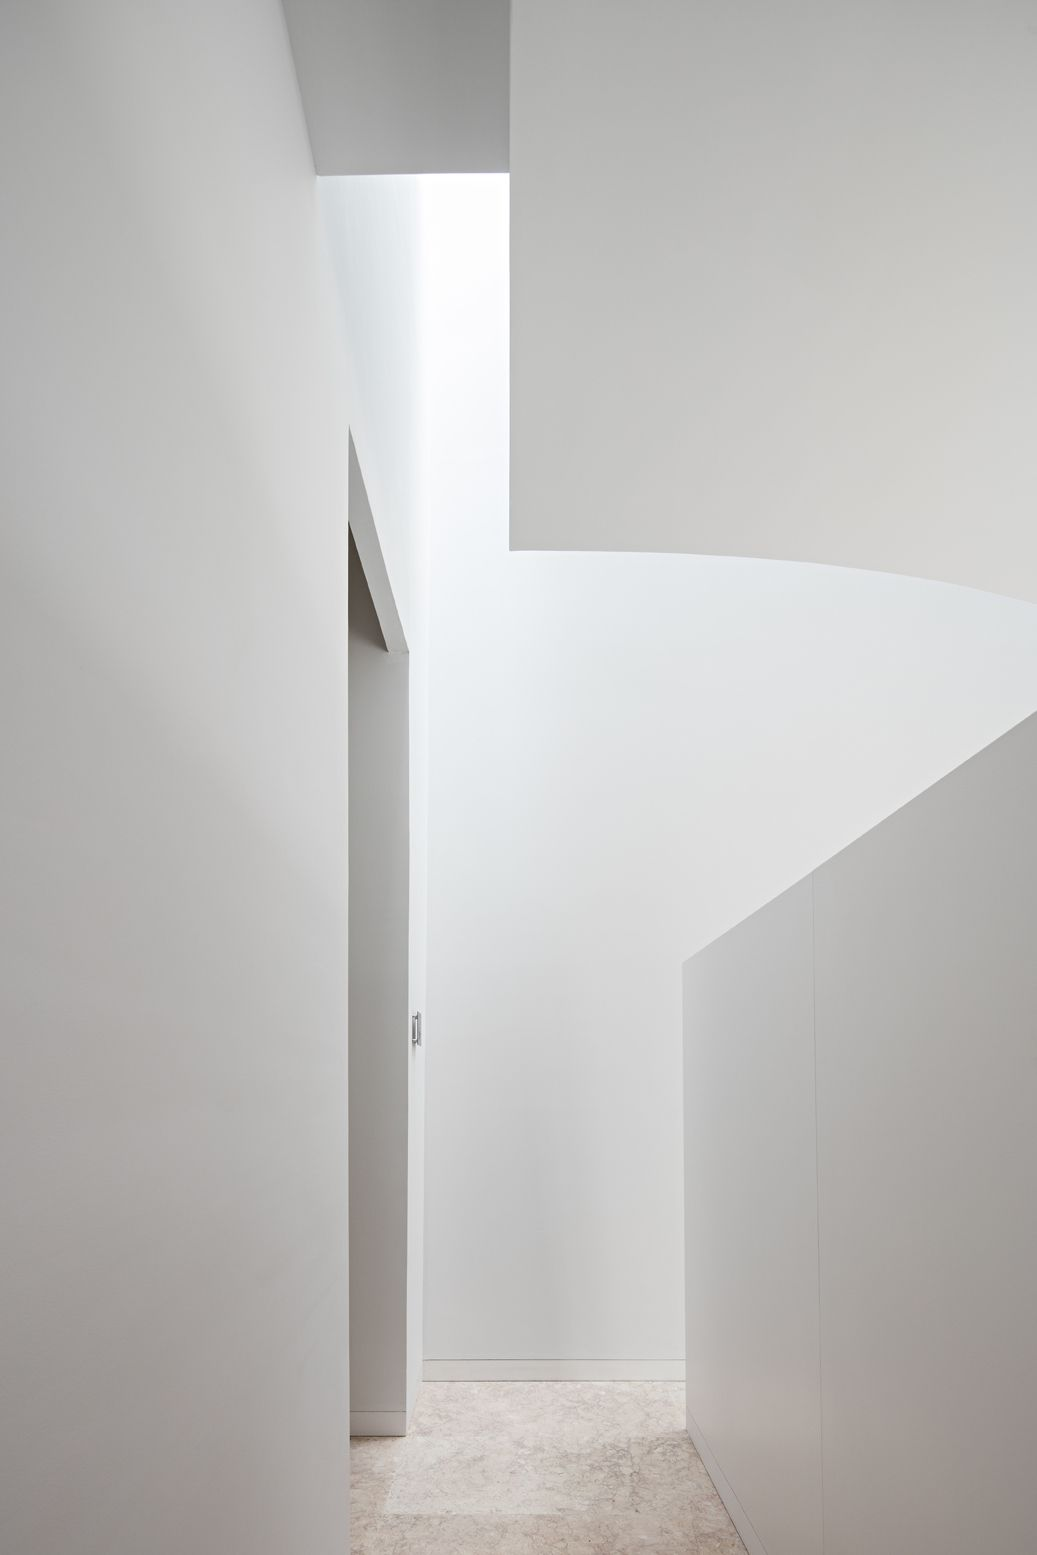 Aires Mateus . Renovation of the Trinity College - European College . Coimbra (15)